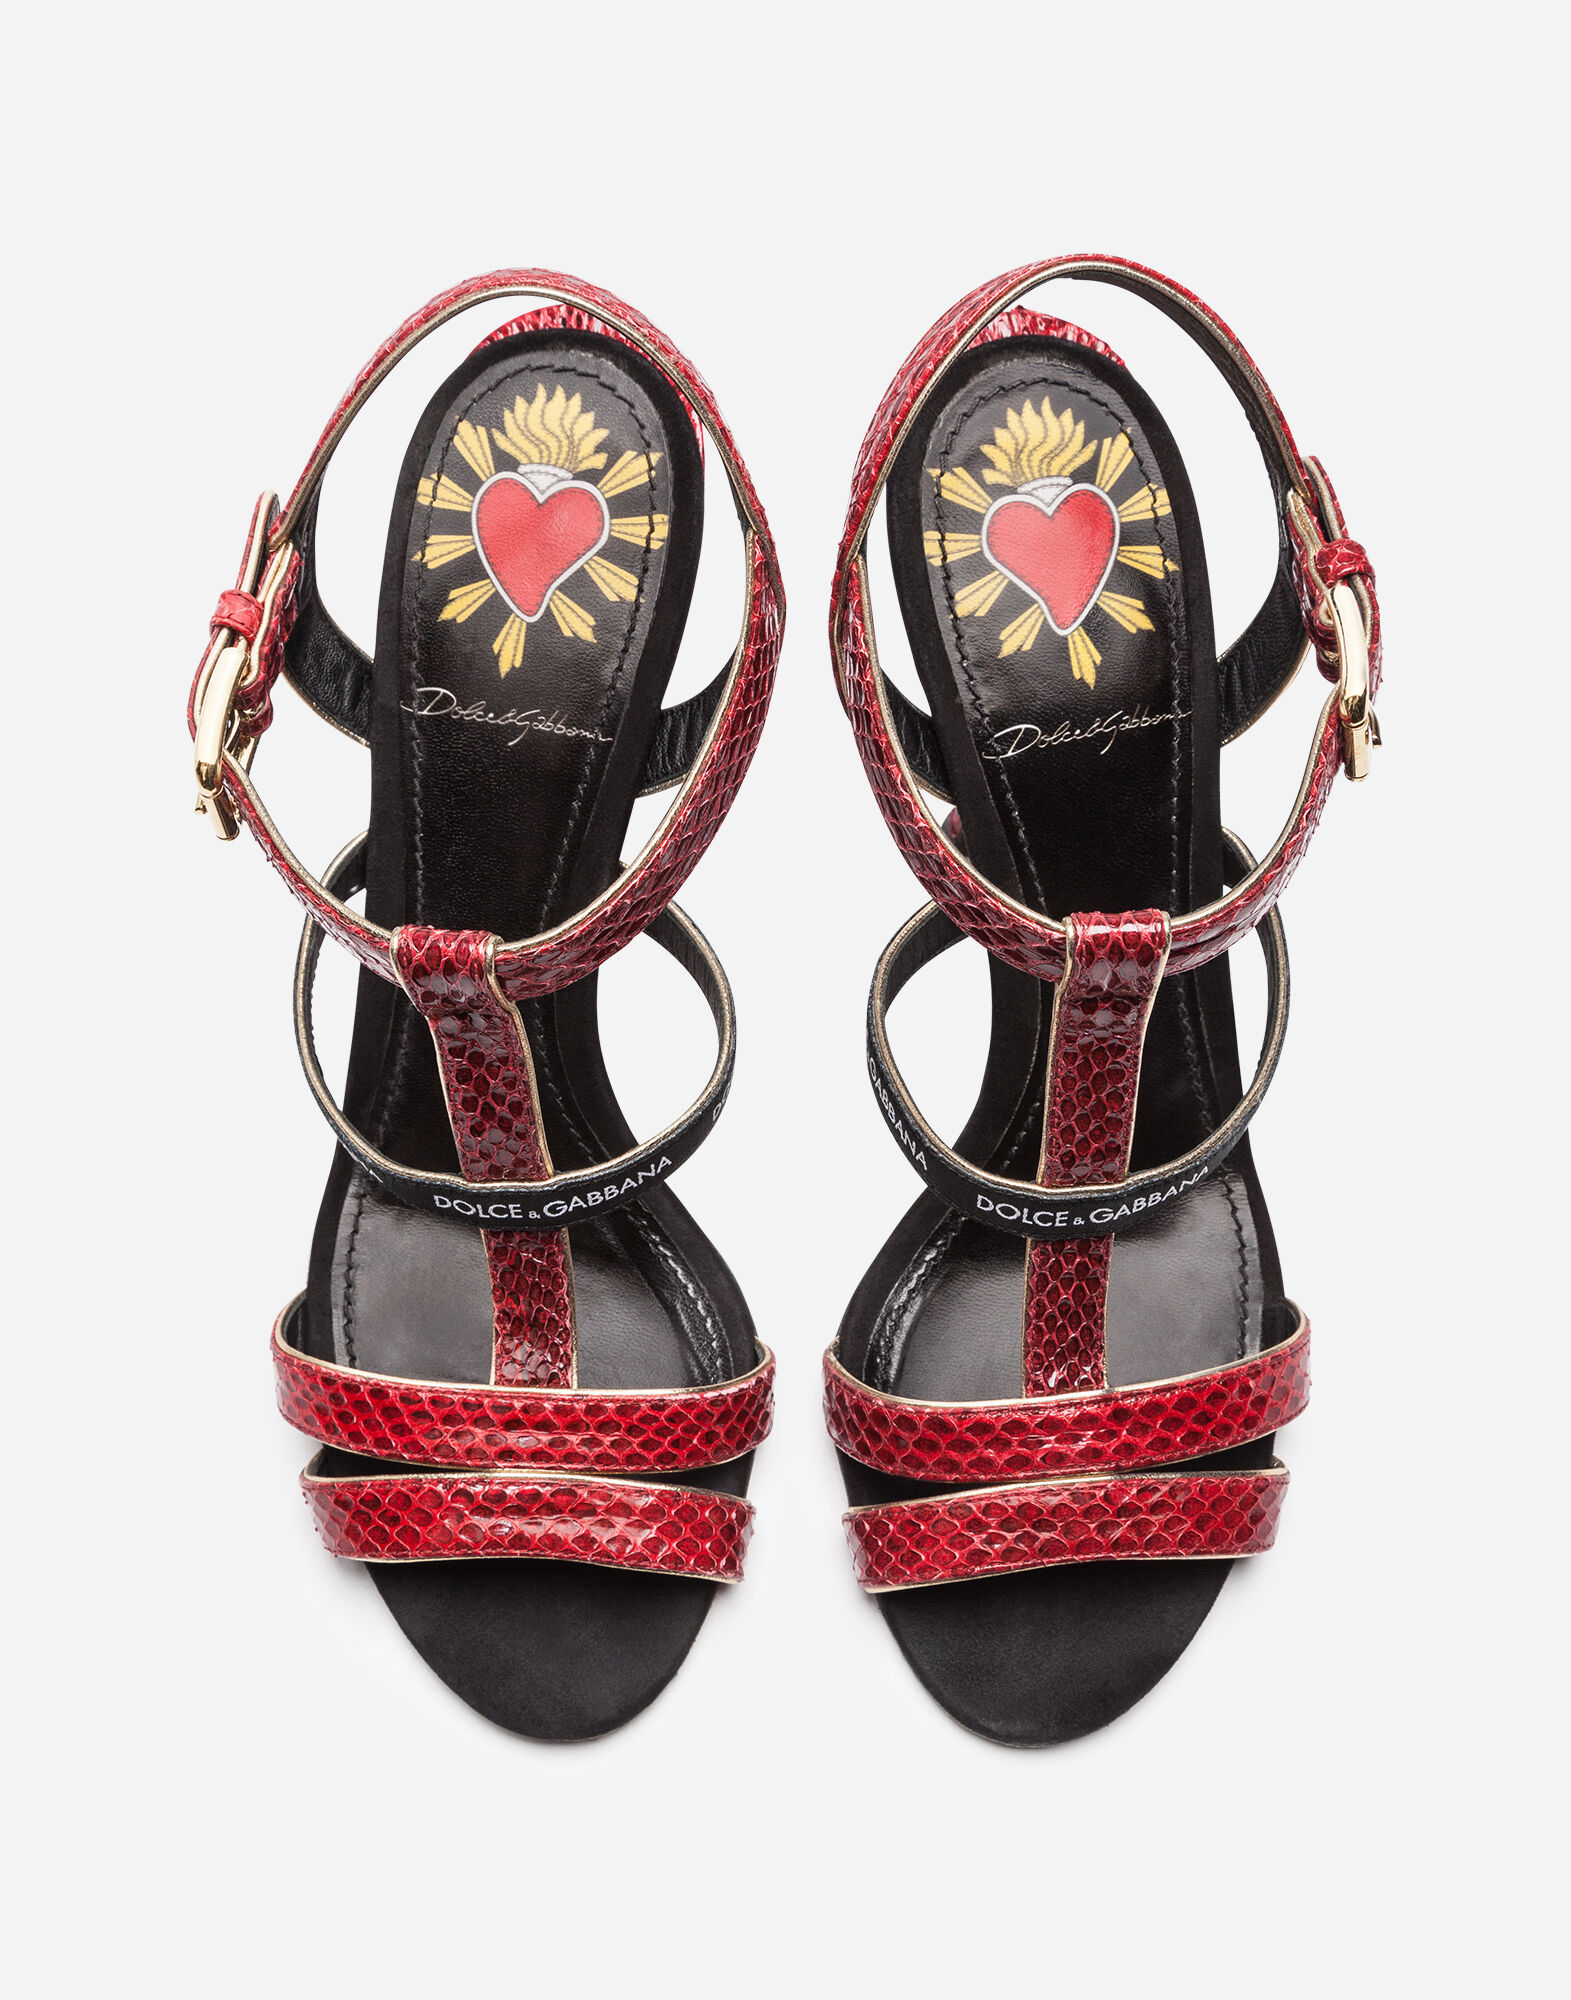 sports shoes e2004 78ac7 Dolce E Gabbana Women'S Red Leather Sandals